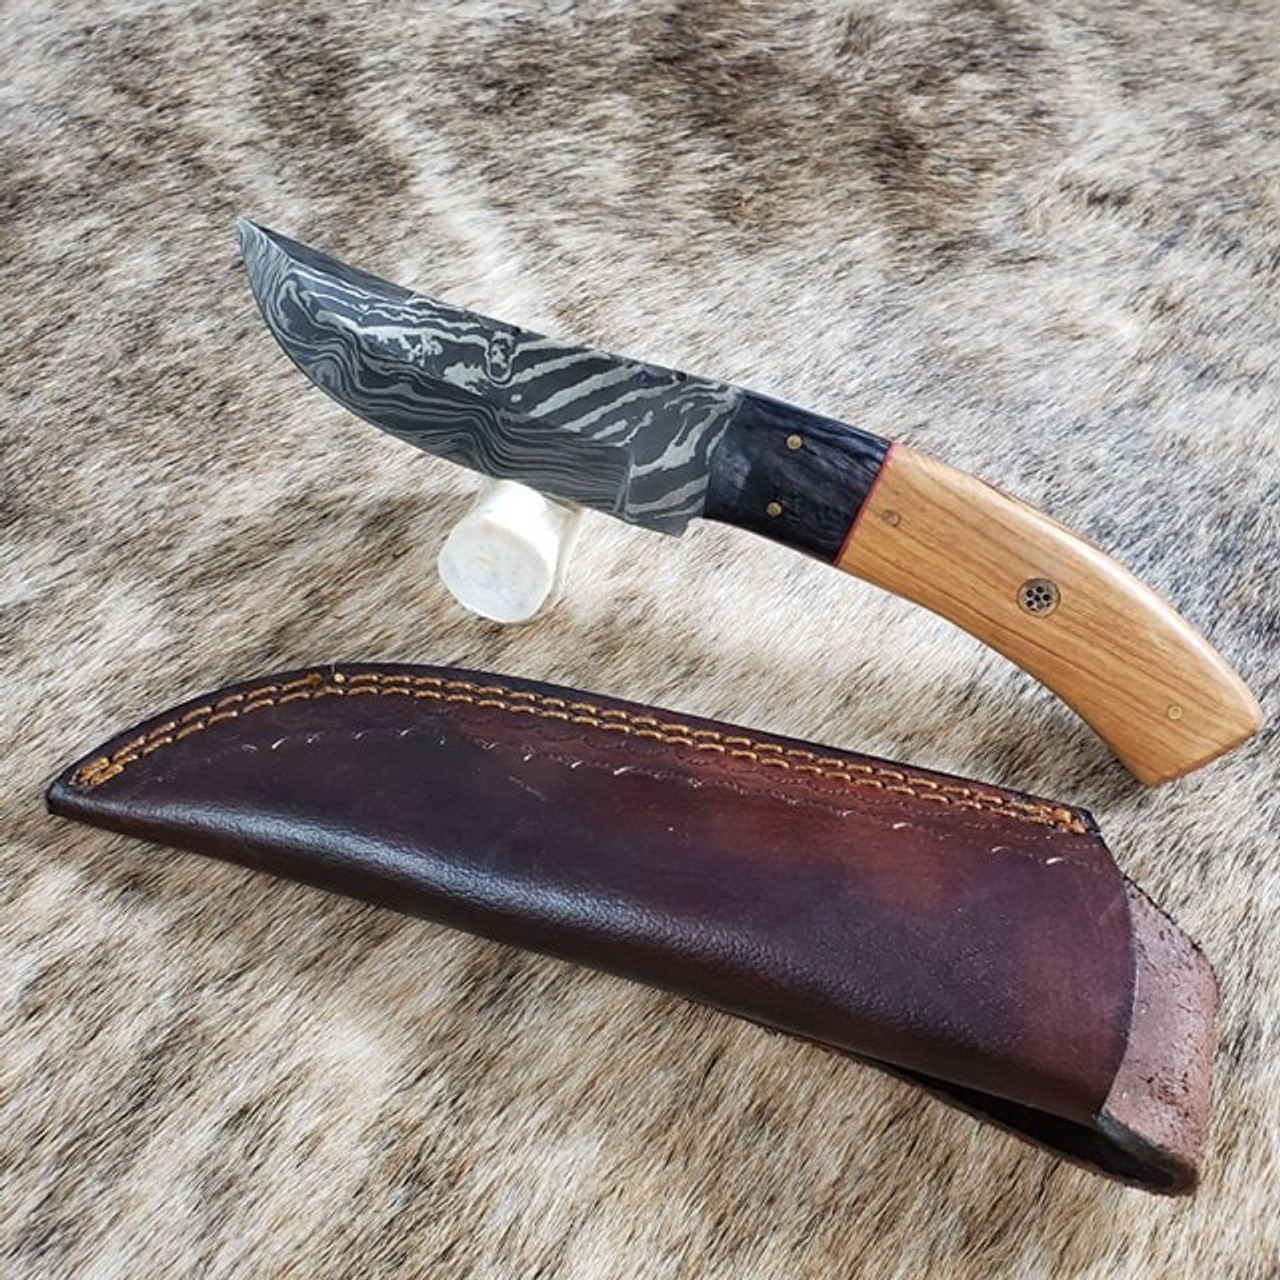 Skinner.Damascus Steel. Total length is 8 inches with 4 inch blade. Handle is Wood. Vertical  sheath included.